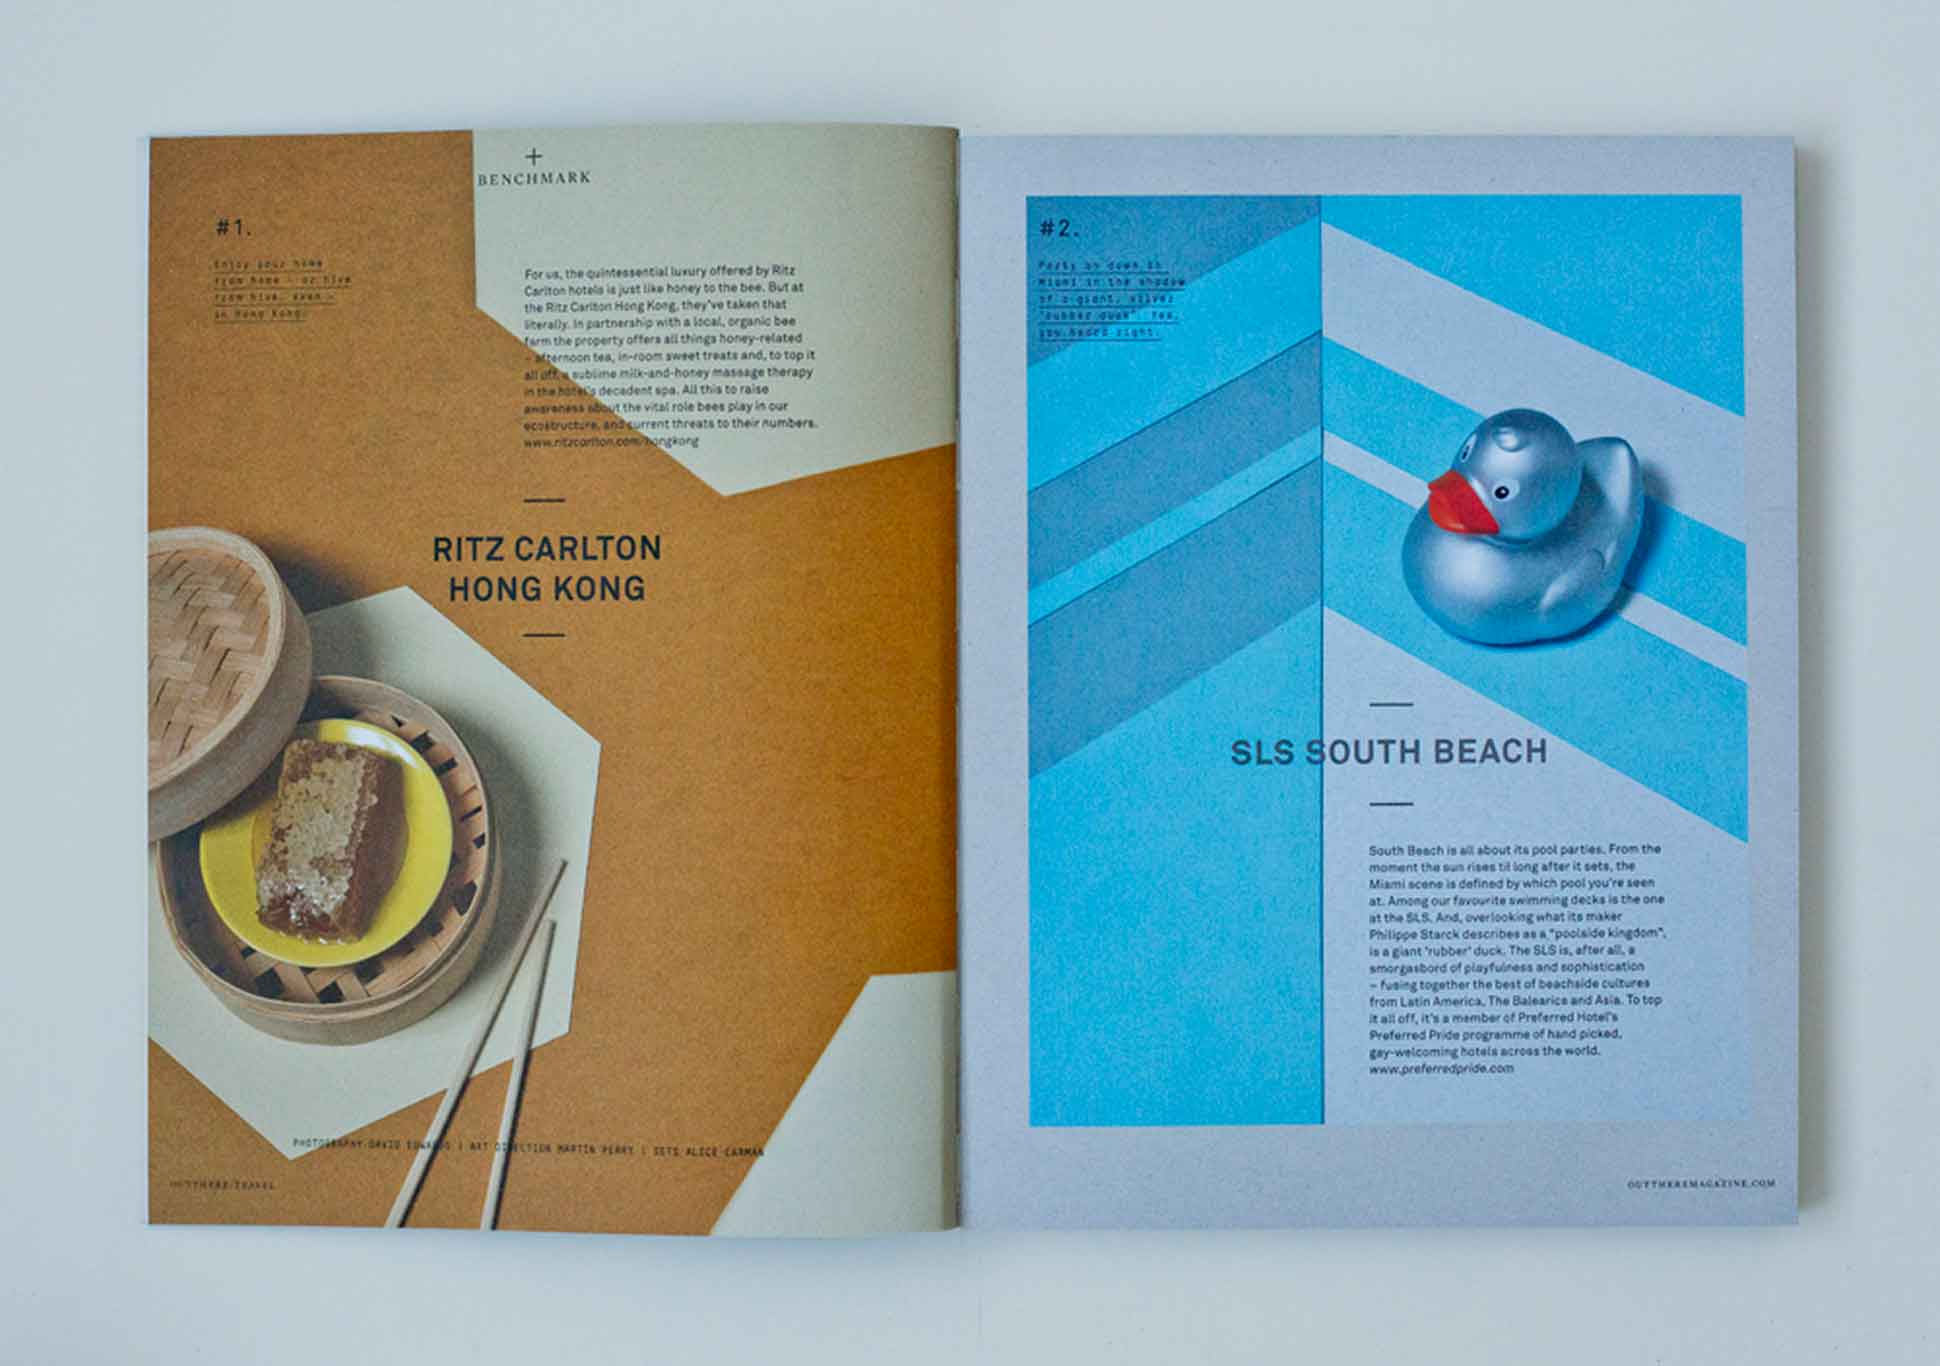 OutThere/Travel Great British Issue preview - Ritz Carlton Hong Kong and SLS Miami